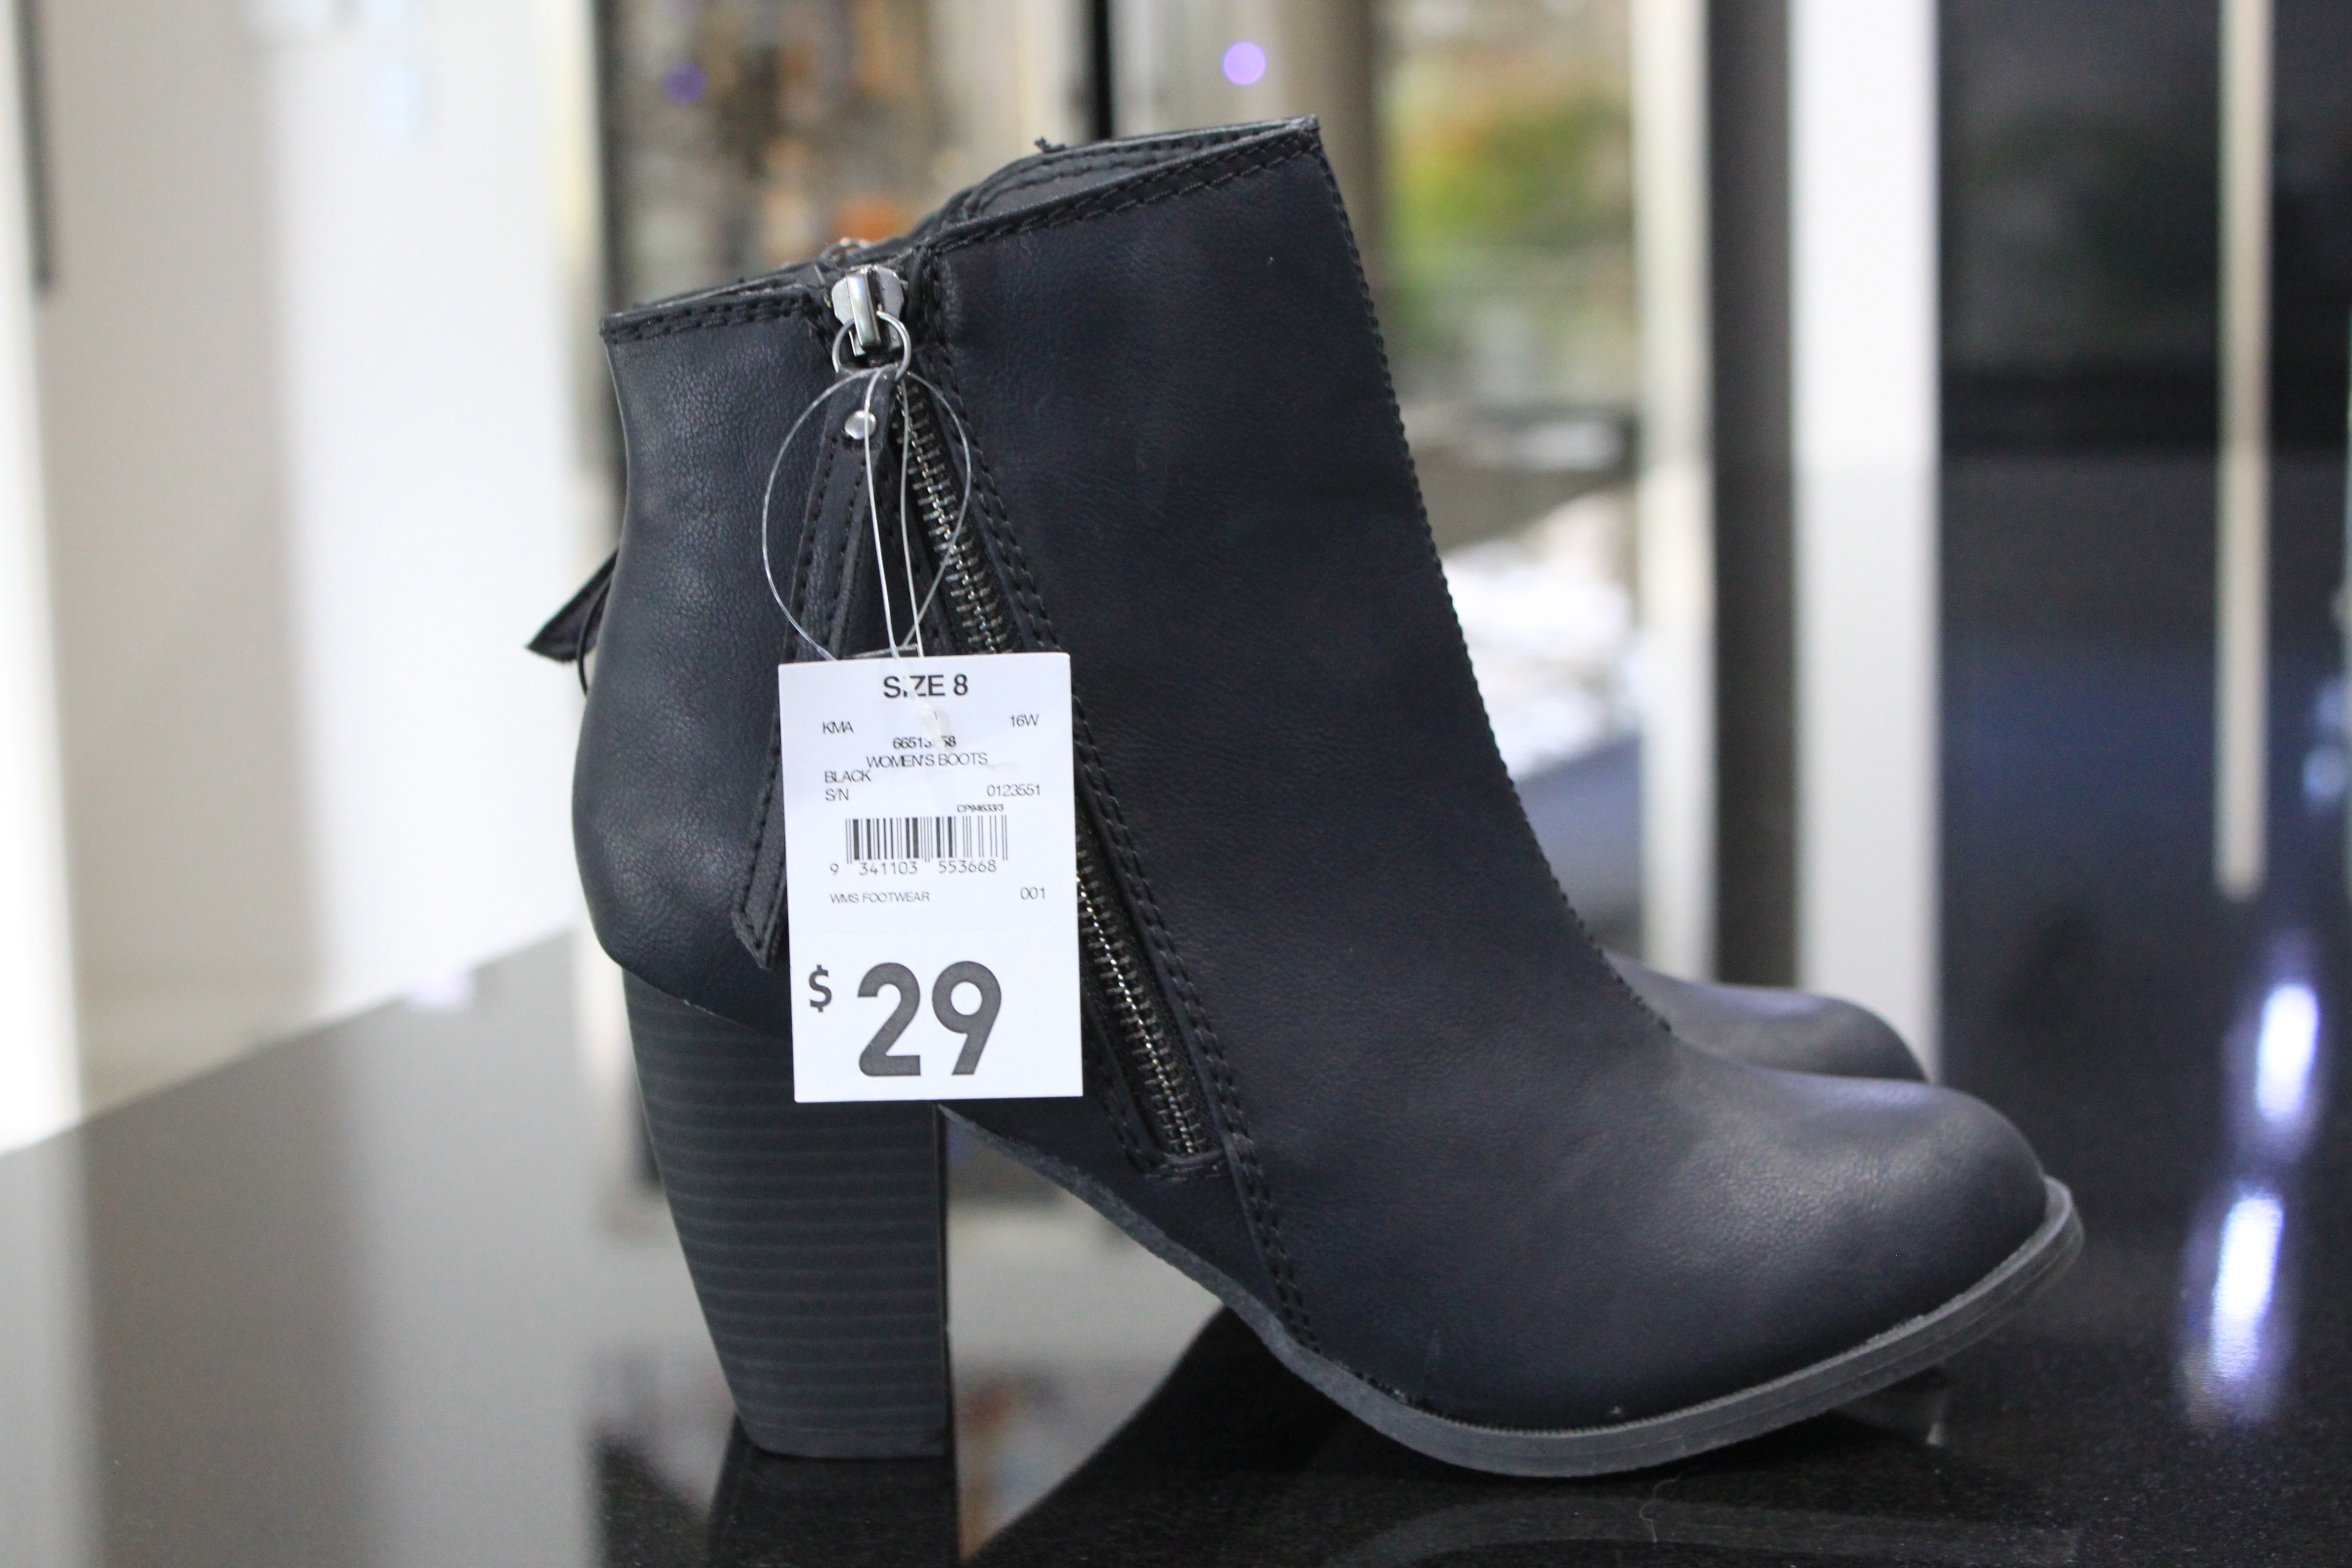 5f8b54b064598 You are going to need a pair of black ankle boots, preferably with a square  chunky heel. Styles are always changing, so if you can't get this exact  pair, ...